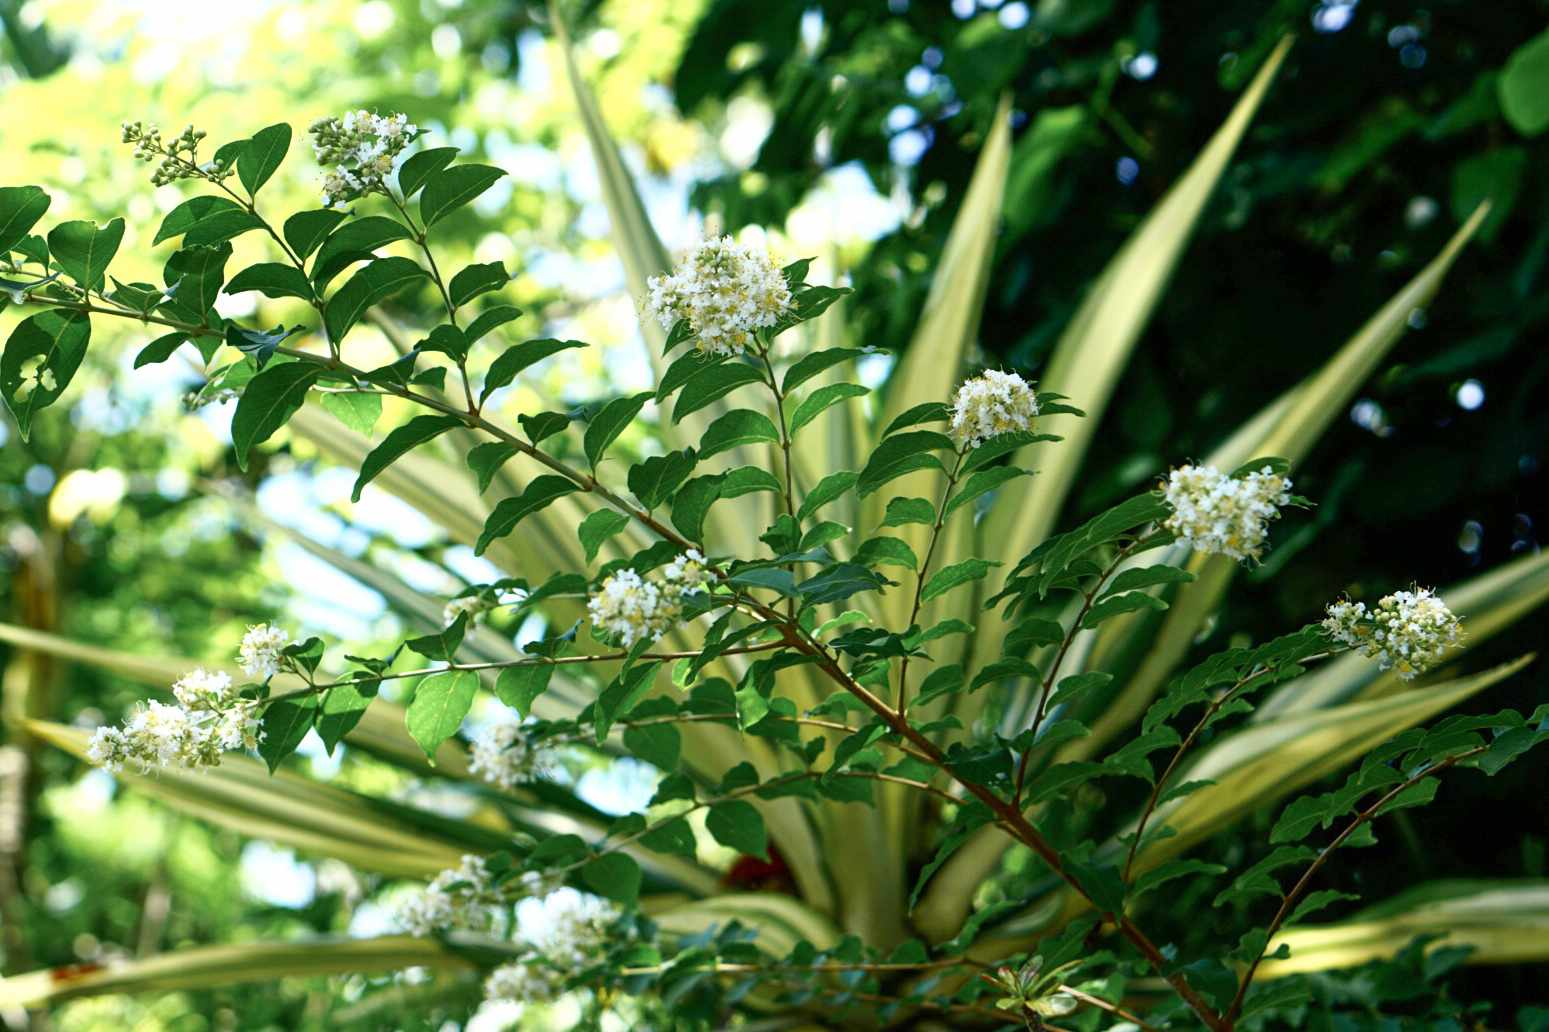 Natchez crepe myrtle tree branch with leaves and white blossoms against green foliage